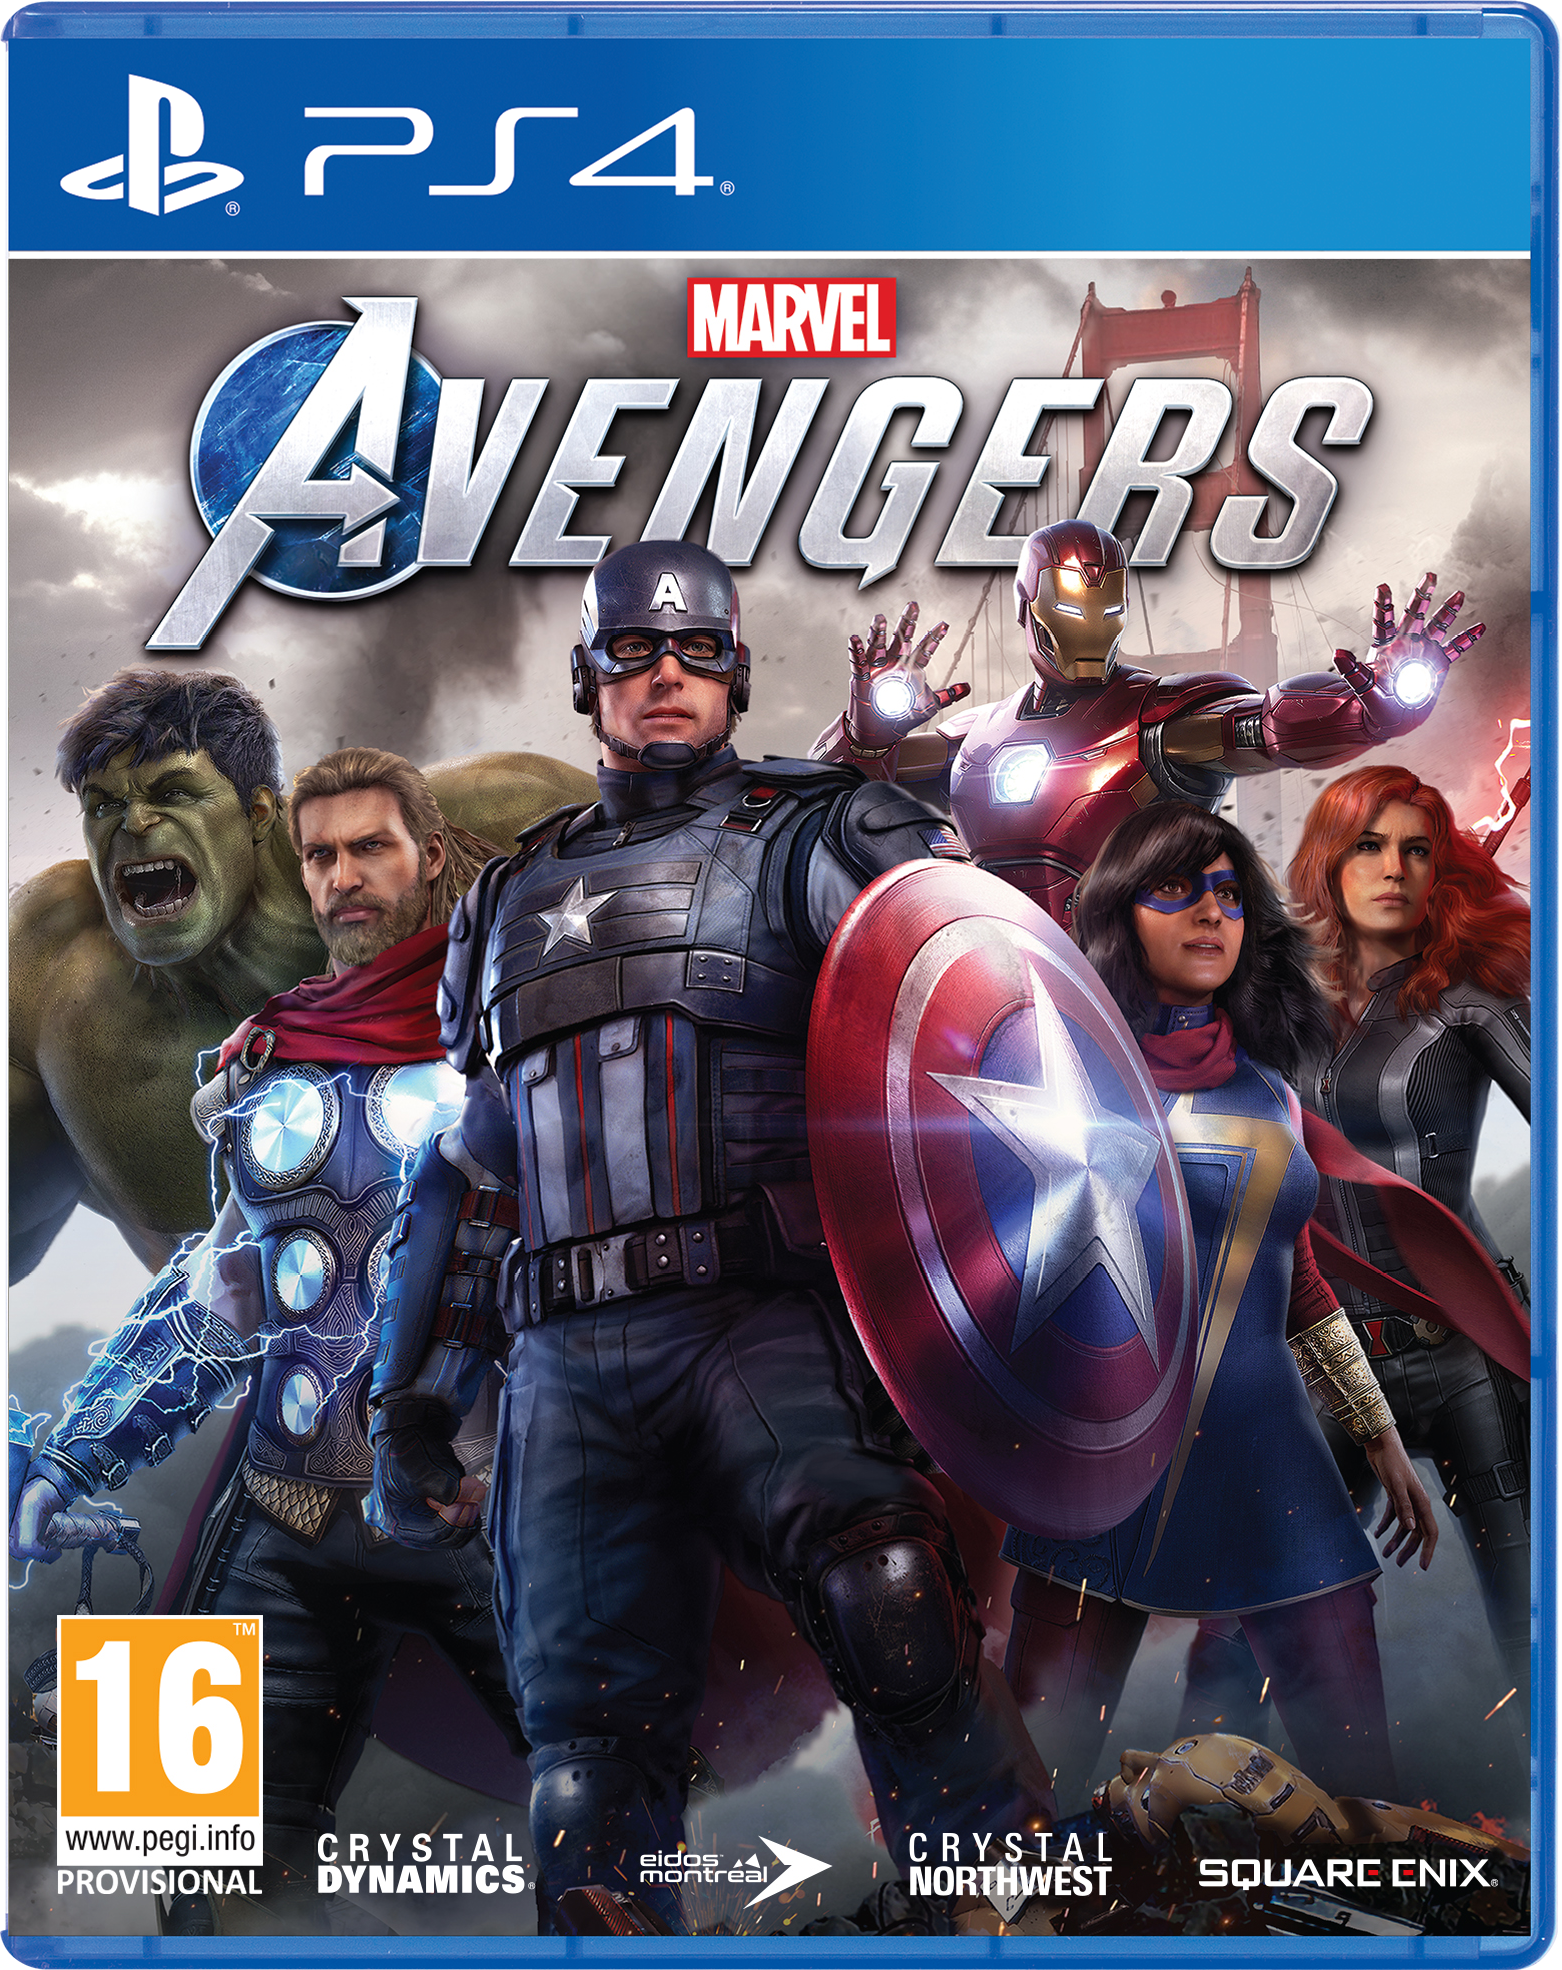 https://www.bigbang.si/upload/catalog/product/670650/marvelavengers-ps4-2d-inpack-pegi-provisional-eng-_5eed8a4252691.png